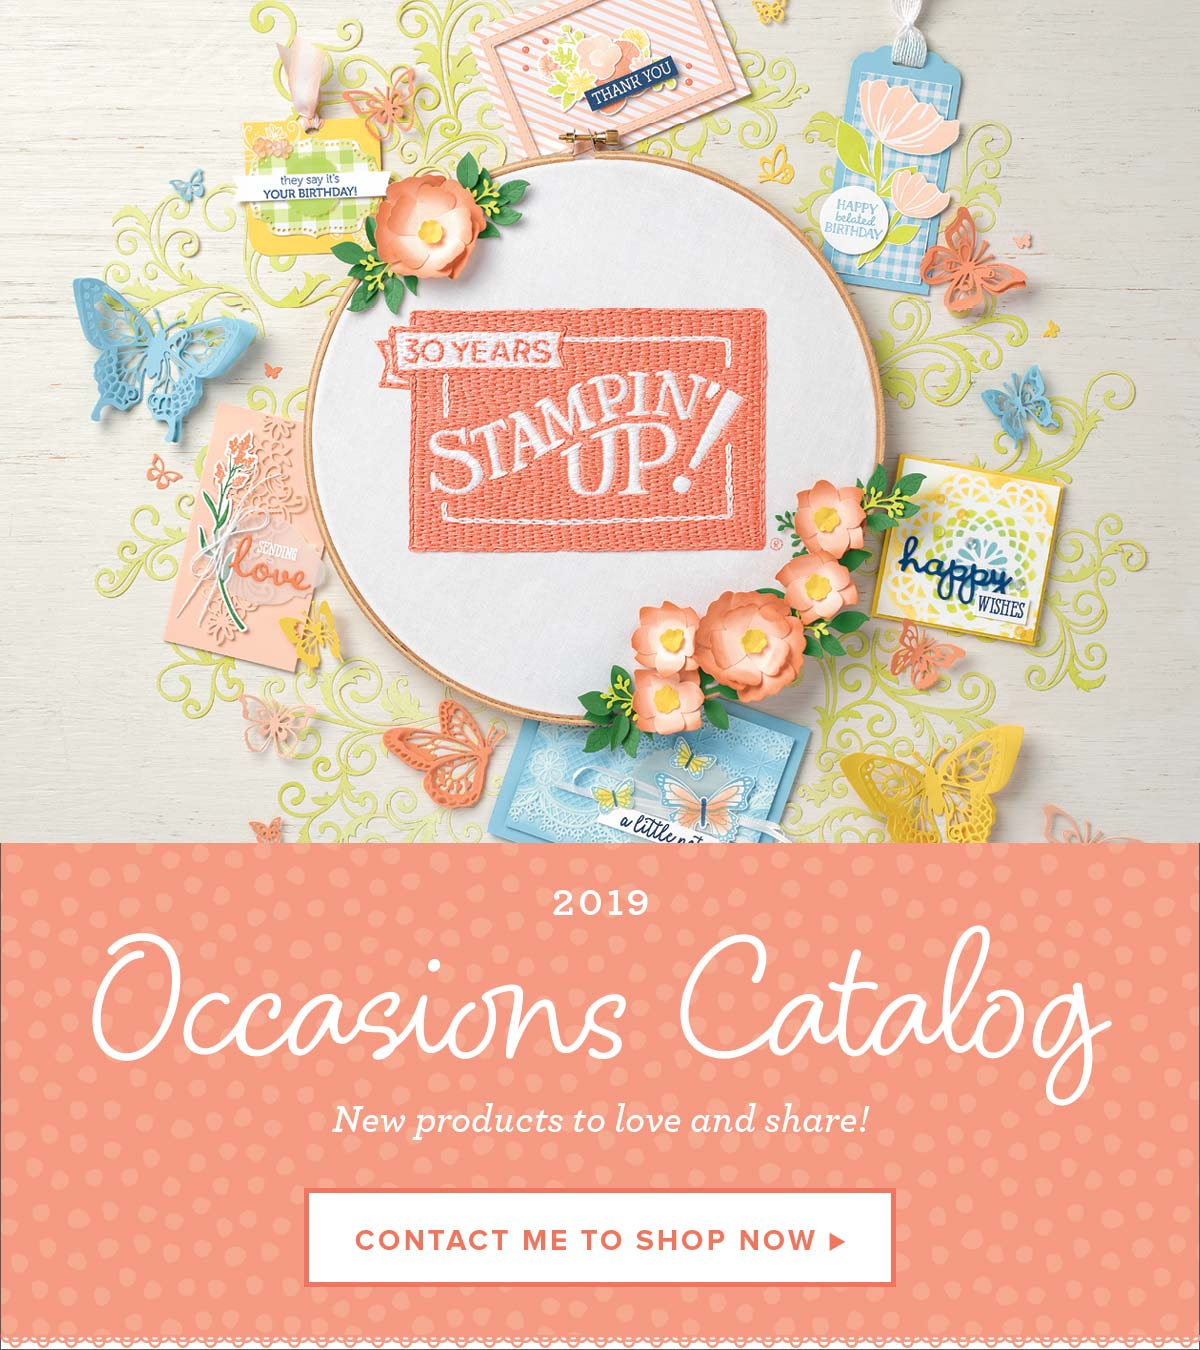 Occasions Catalog